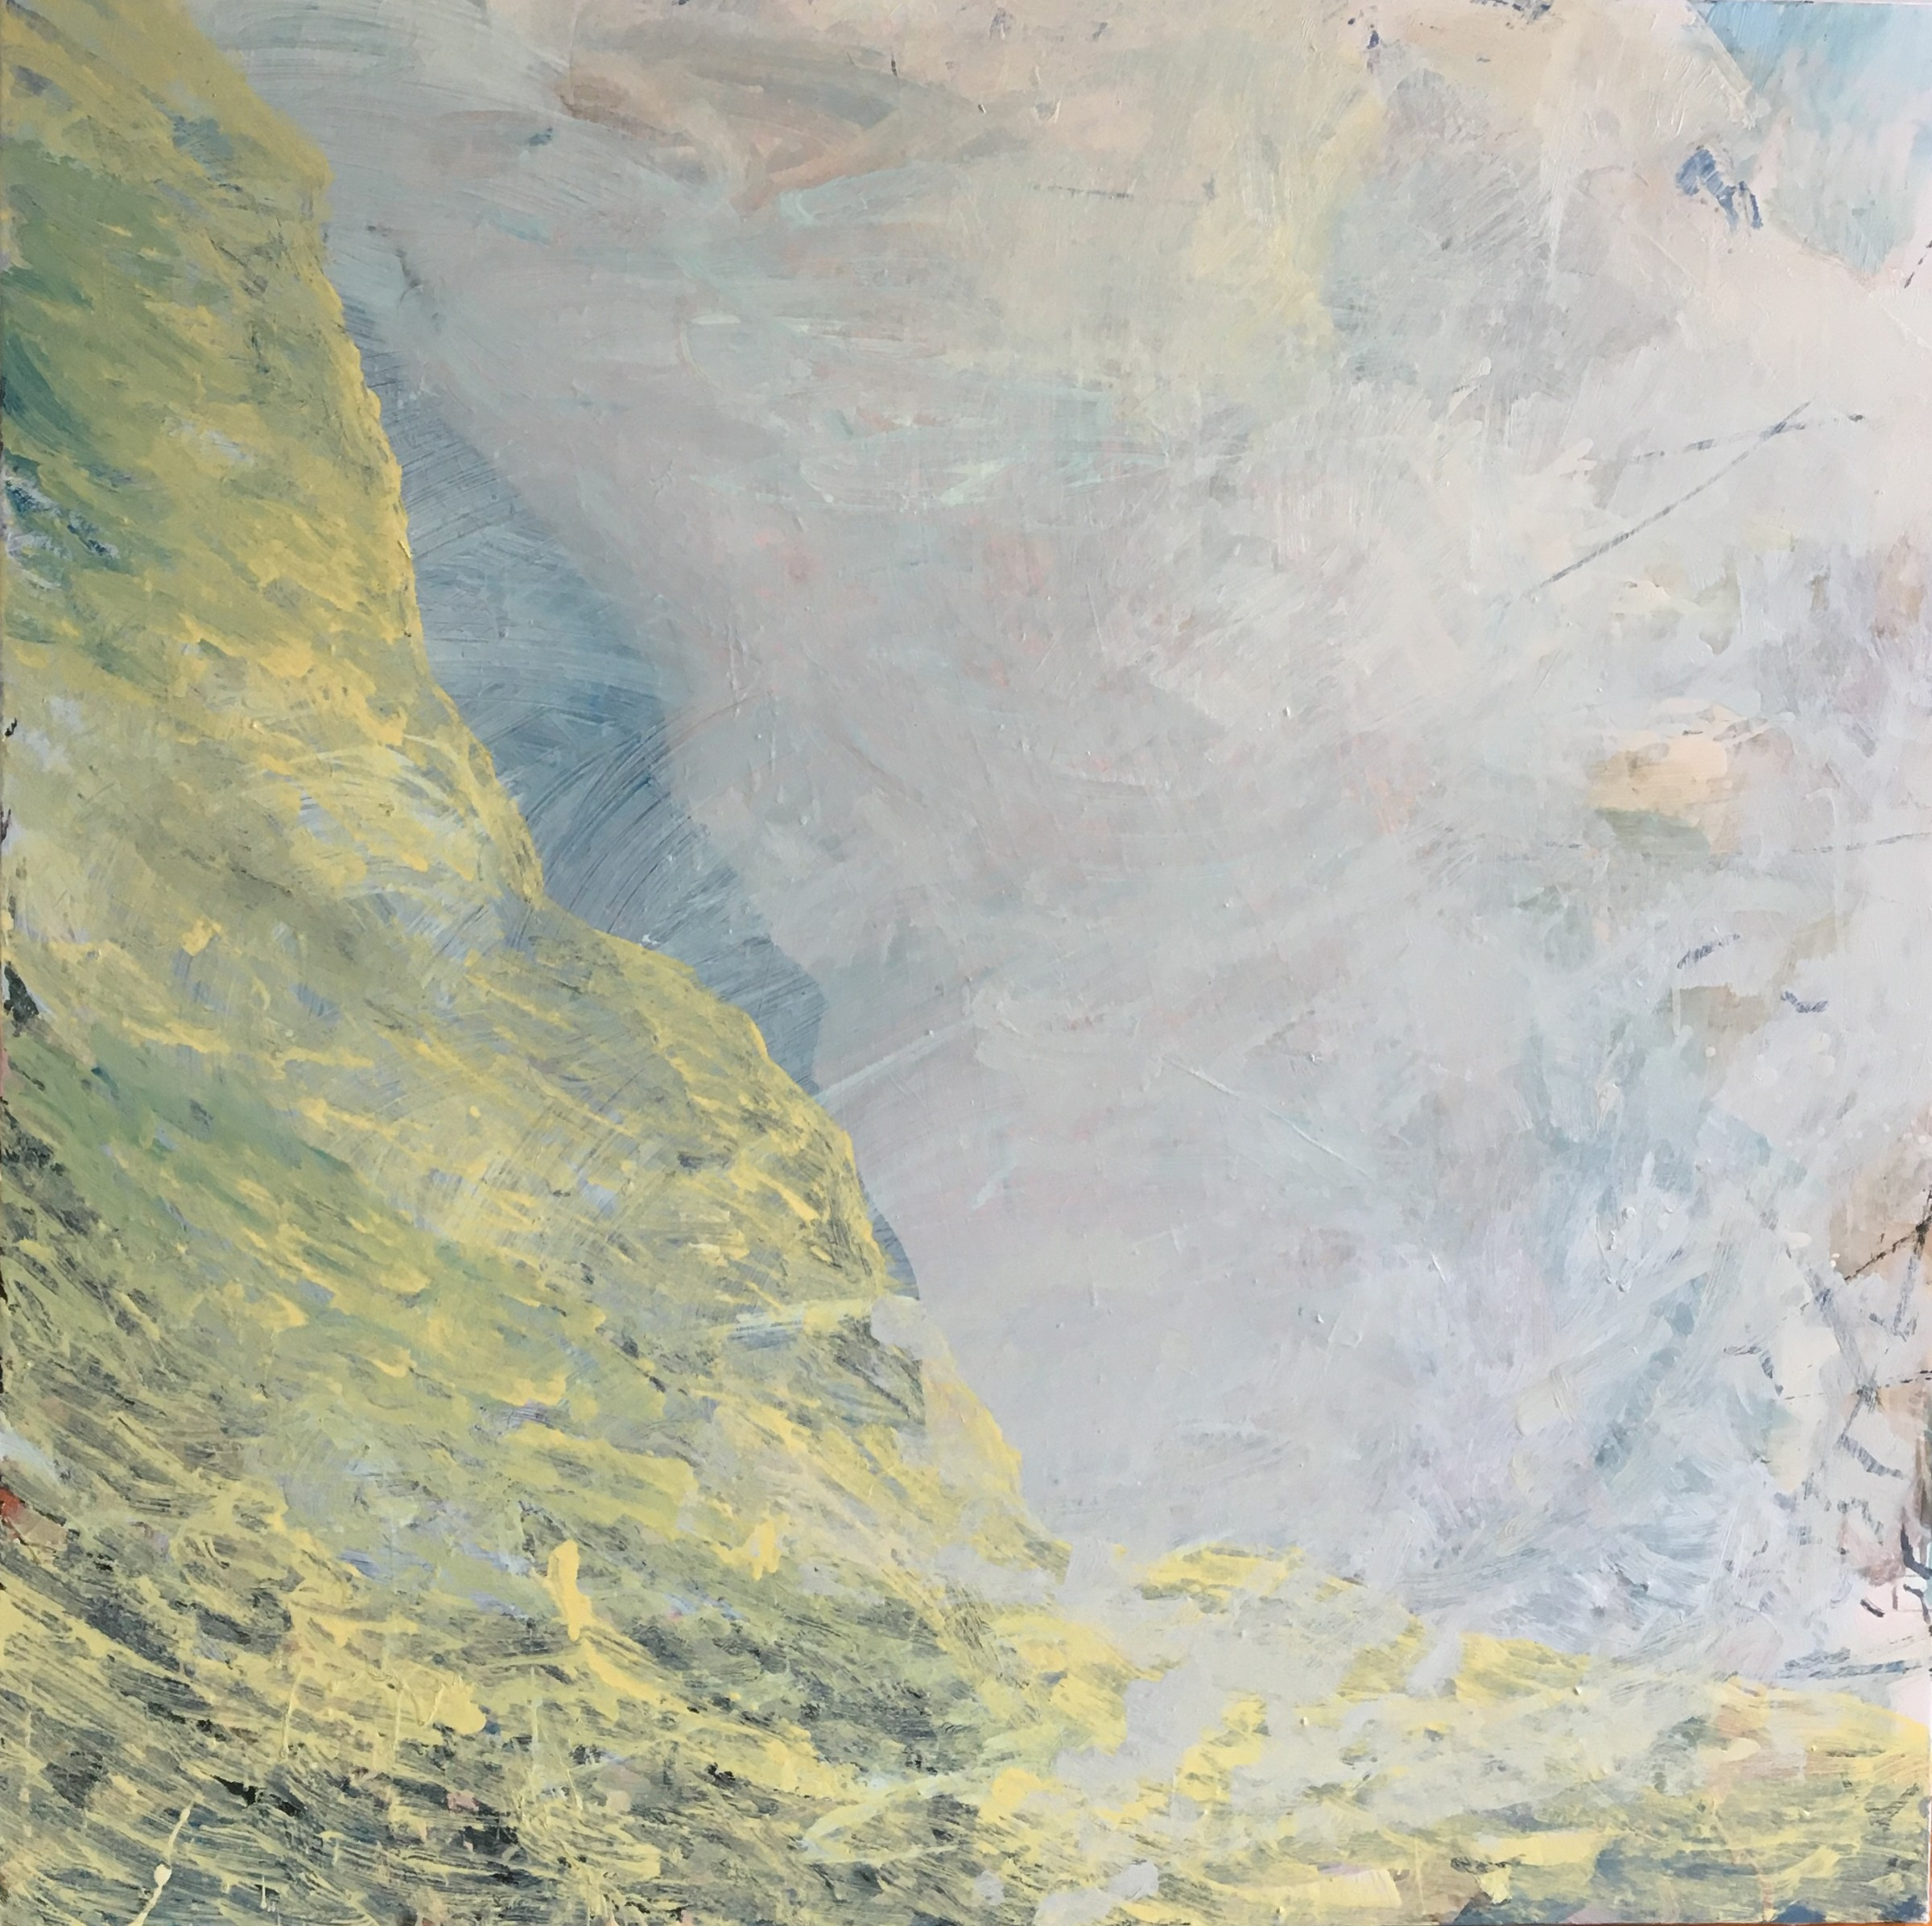 "<span class=""link fancybox-details-link""><a href=""/artists/159-sara-dudman-rwa/works/7042-sara-dudman-rwa-bryher-isles-of-scilly-to-bempton-cliffs-yorkshire-2020/"">View Detail Page</a></span><div class=""artist""><strong>Sara Dudman RWA</strong></div> <div class=""title""><em>Bryher, Isles of Scilly to Bempton Cliffs, Yorkshire (Black0Backed Gulls) 1</em>, 2020</div> <div class=""medium"">Oil on Canvas</div> <div class=""dimensions"">92cms x 92cms (unframed)<br /> 96cms x 96cms tray framed</div><div class=""price"">£2,300.00</div><div class=""copyright_line"">Copyright The Artist</div>"